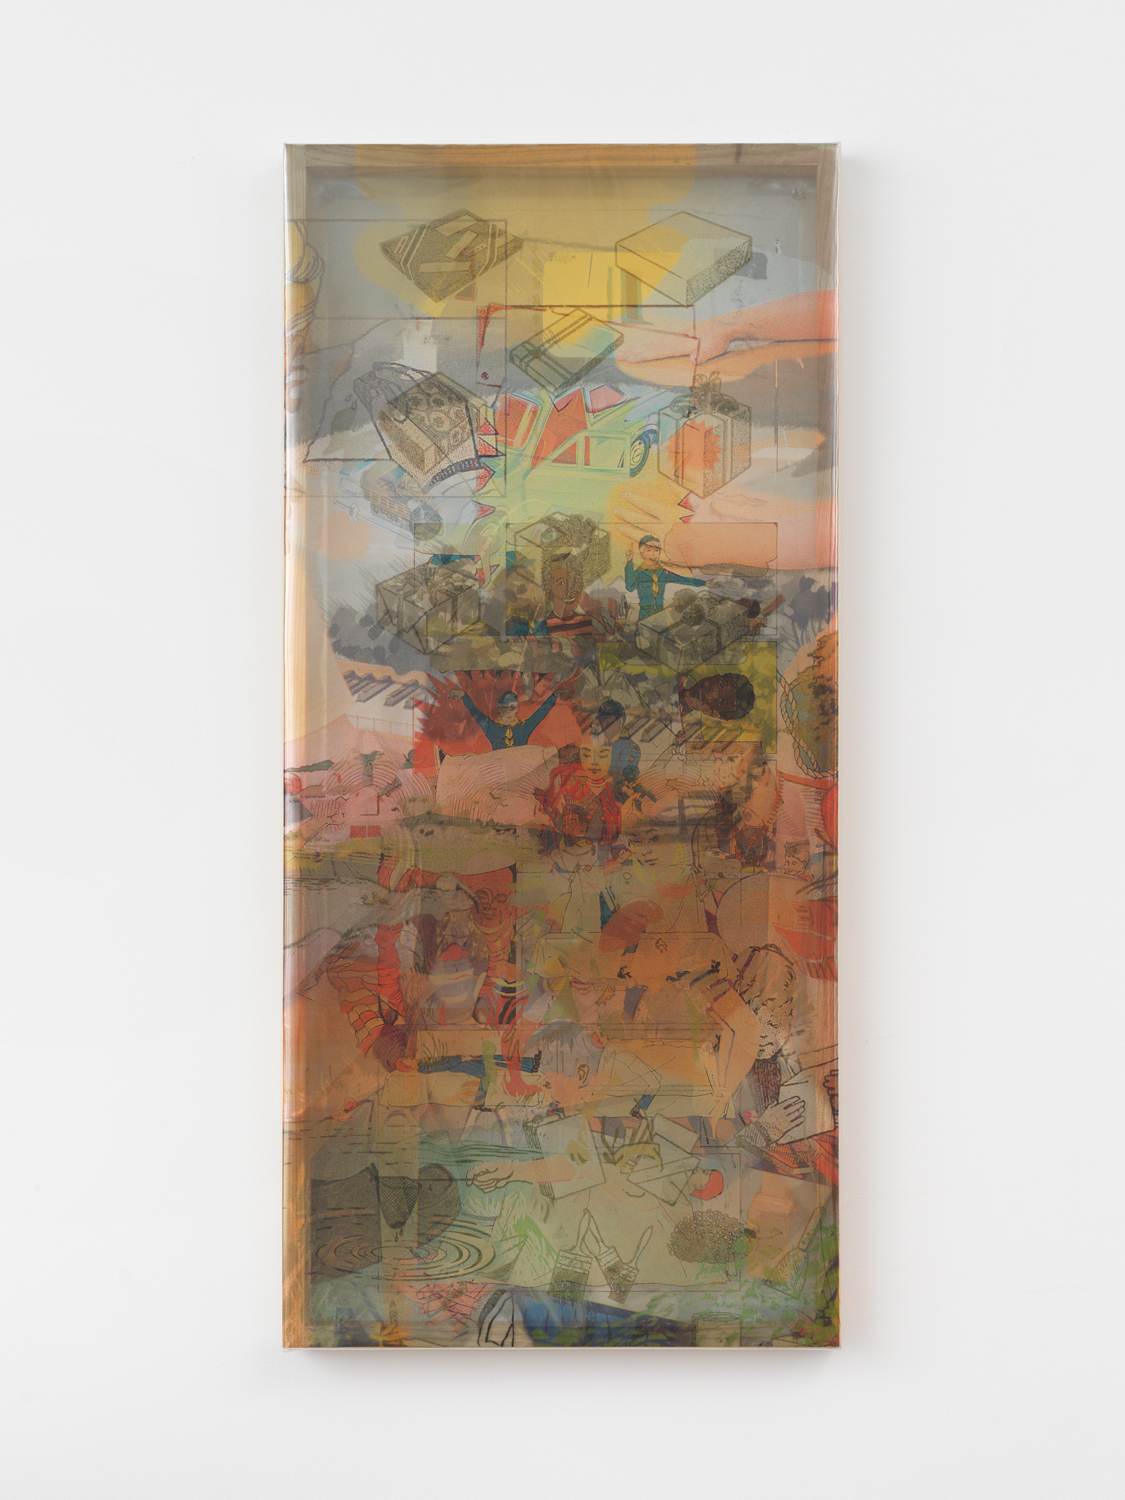 Jibade-Khalil Huffman, Untitled (Hover), 2020, Inkjet on transparencies, looping video, 41.13h x 19w x 1.50d in